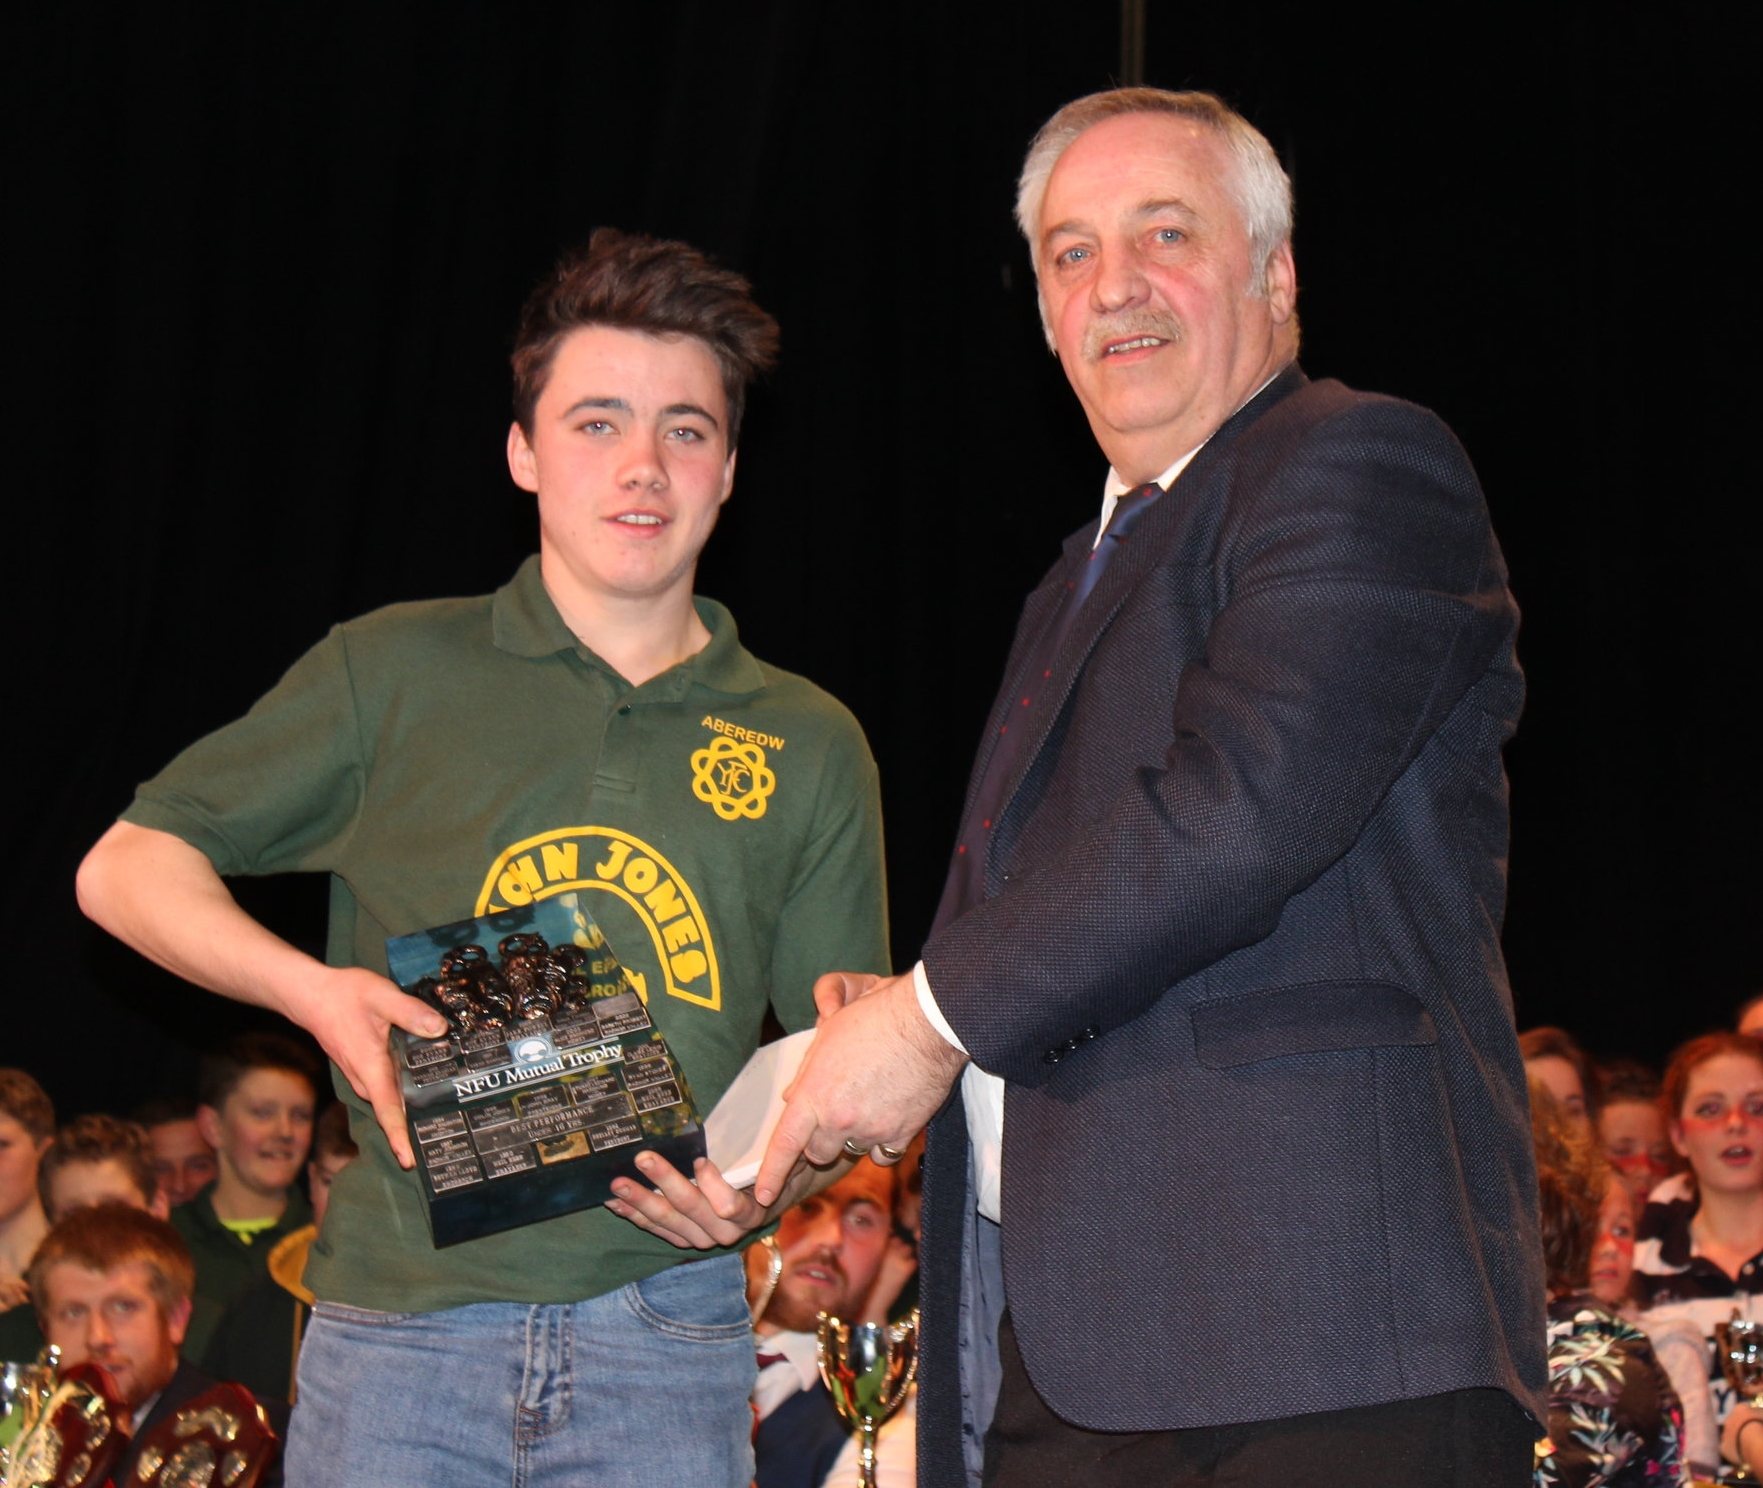 Rhys Morris, Aberedw YFC with the 'NFU Shield' for best performance 16 years and under being presented to by David Powell, FUW